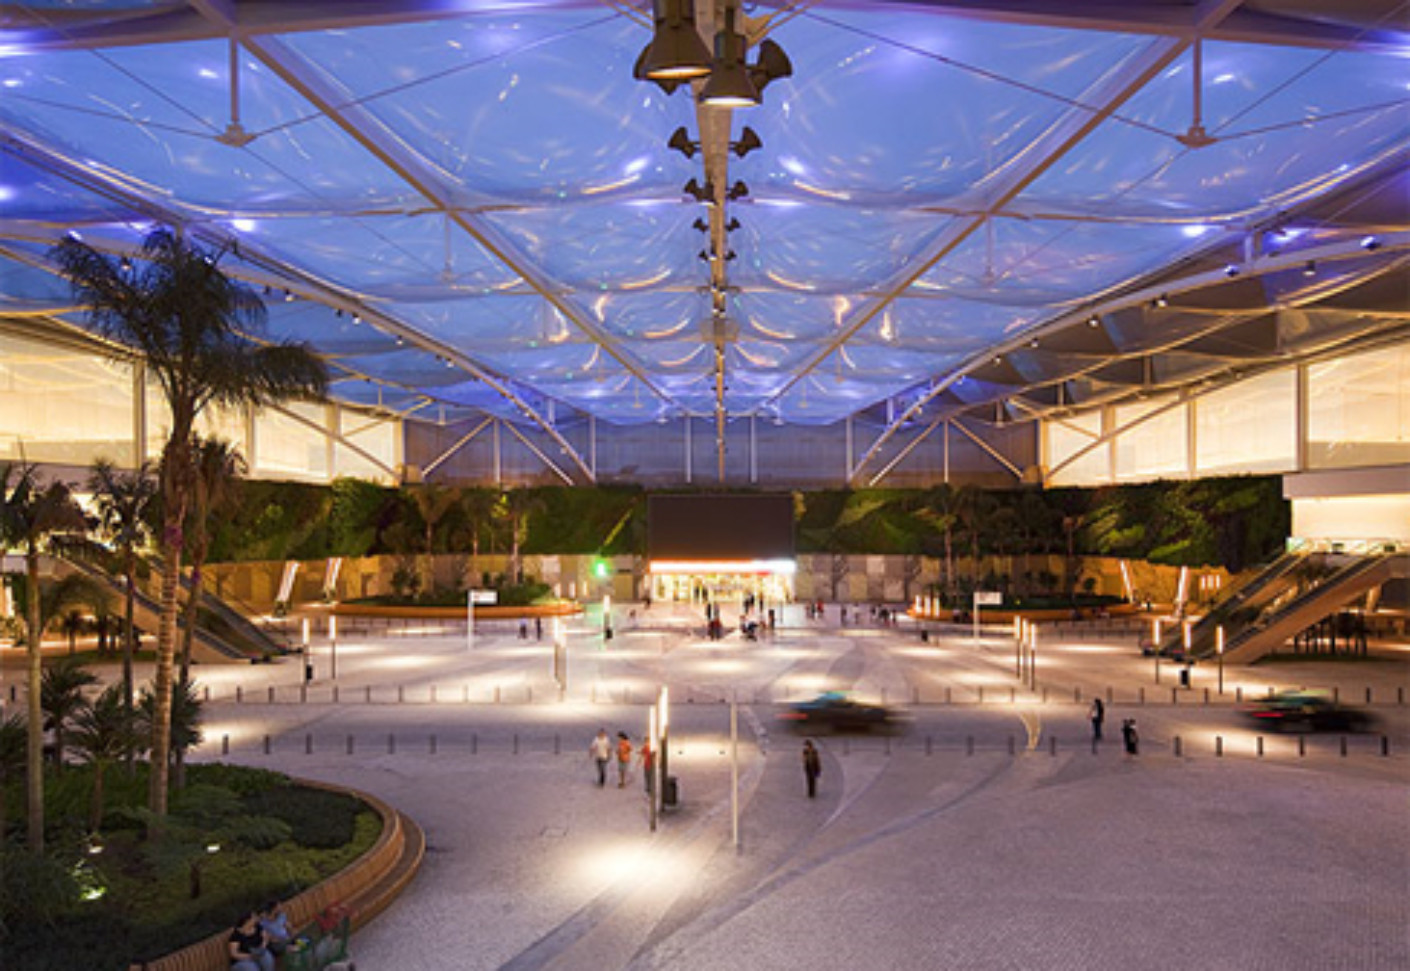 Etfe Foil Cushions Shopping Complex By Hightex Stylepark